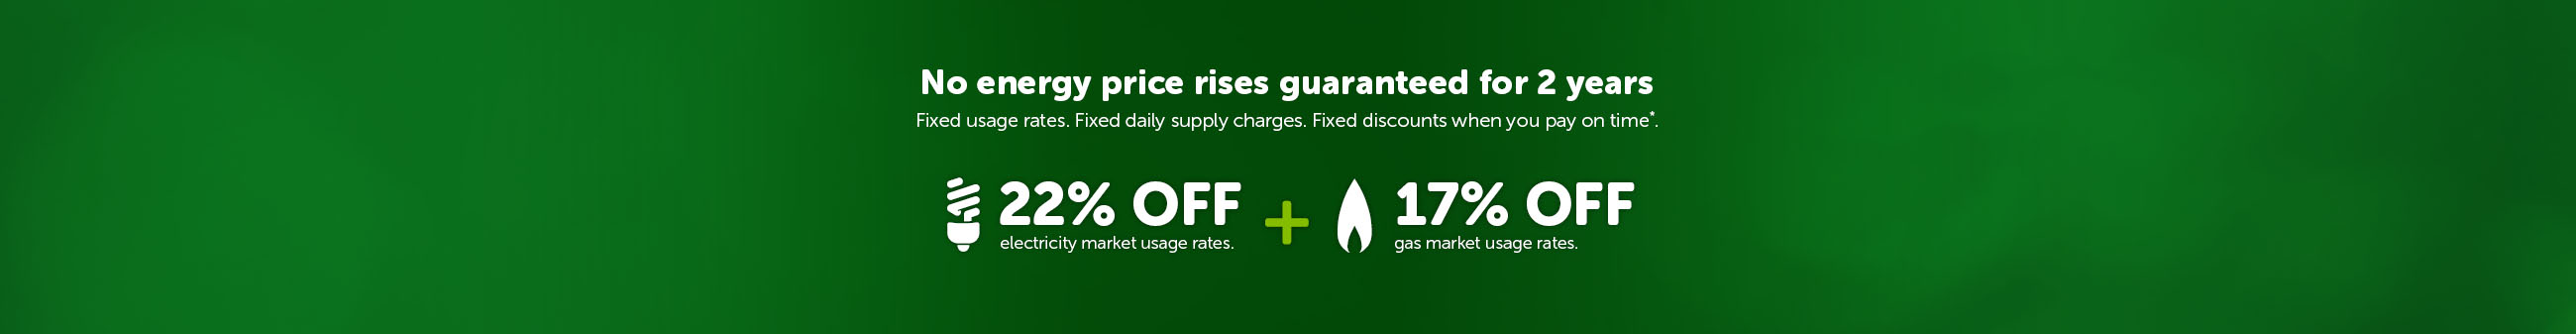 No price rises guaranteed for 2 years. Fixed usage rates. Fixed daily supply charges. Fixed discounts when you pay on time*. 22% off electricity market usage rates. 17% off gas market usage rates.